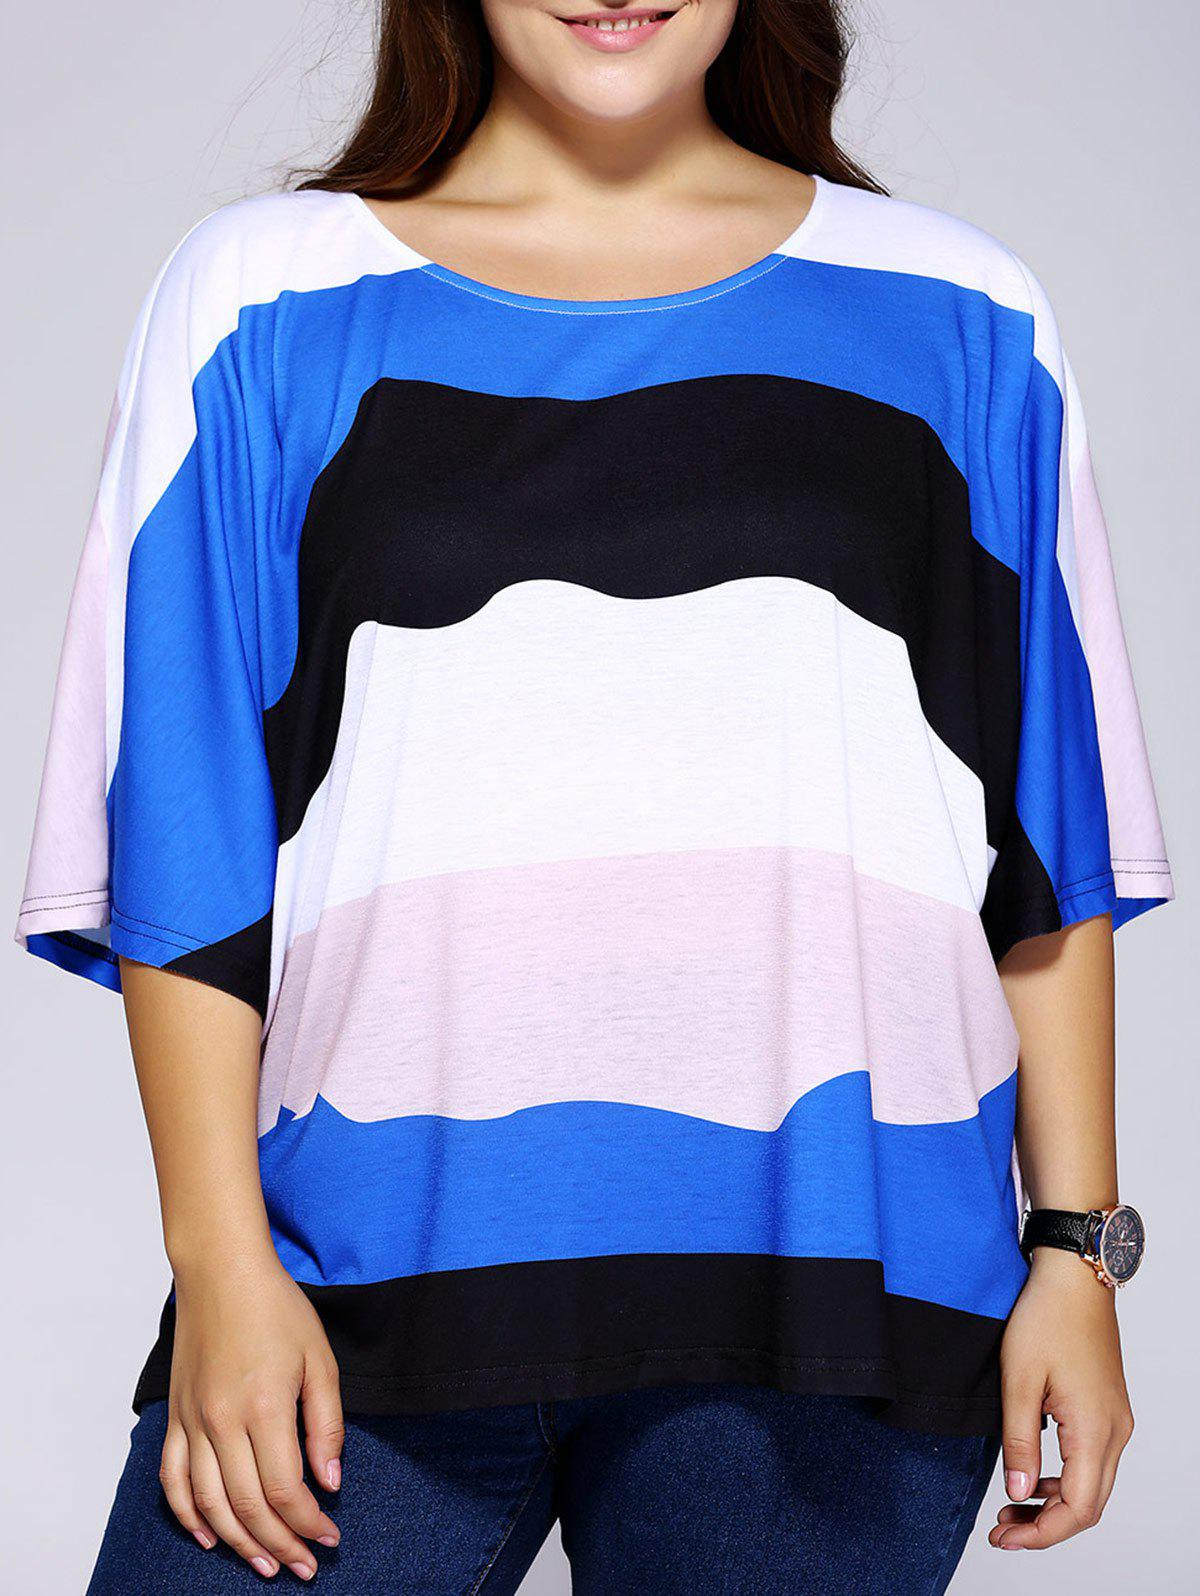 Casual Scoop Neck Loose-Fitting Color Block Stripe Top For Women - COLORMIX 3XL